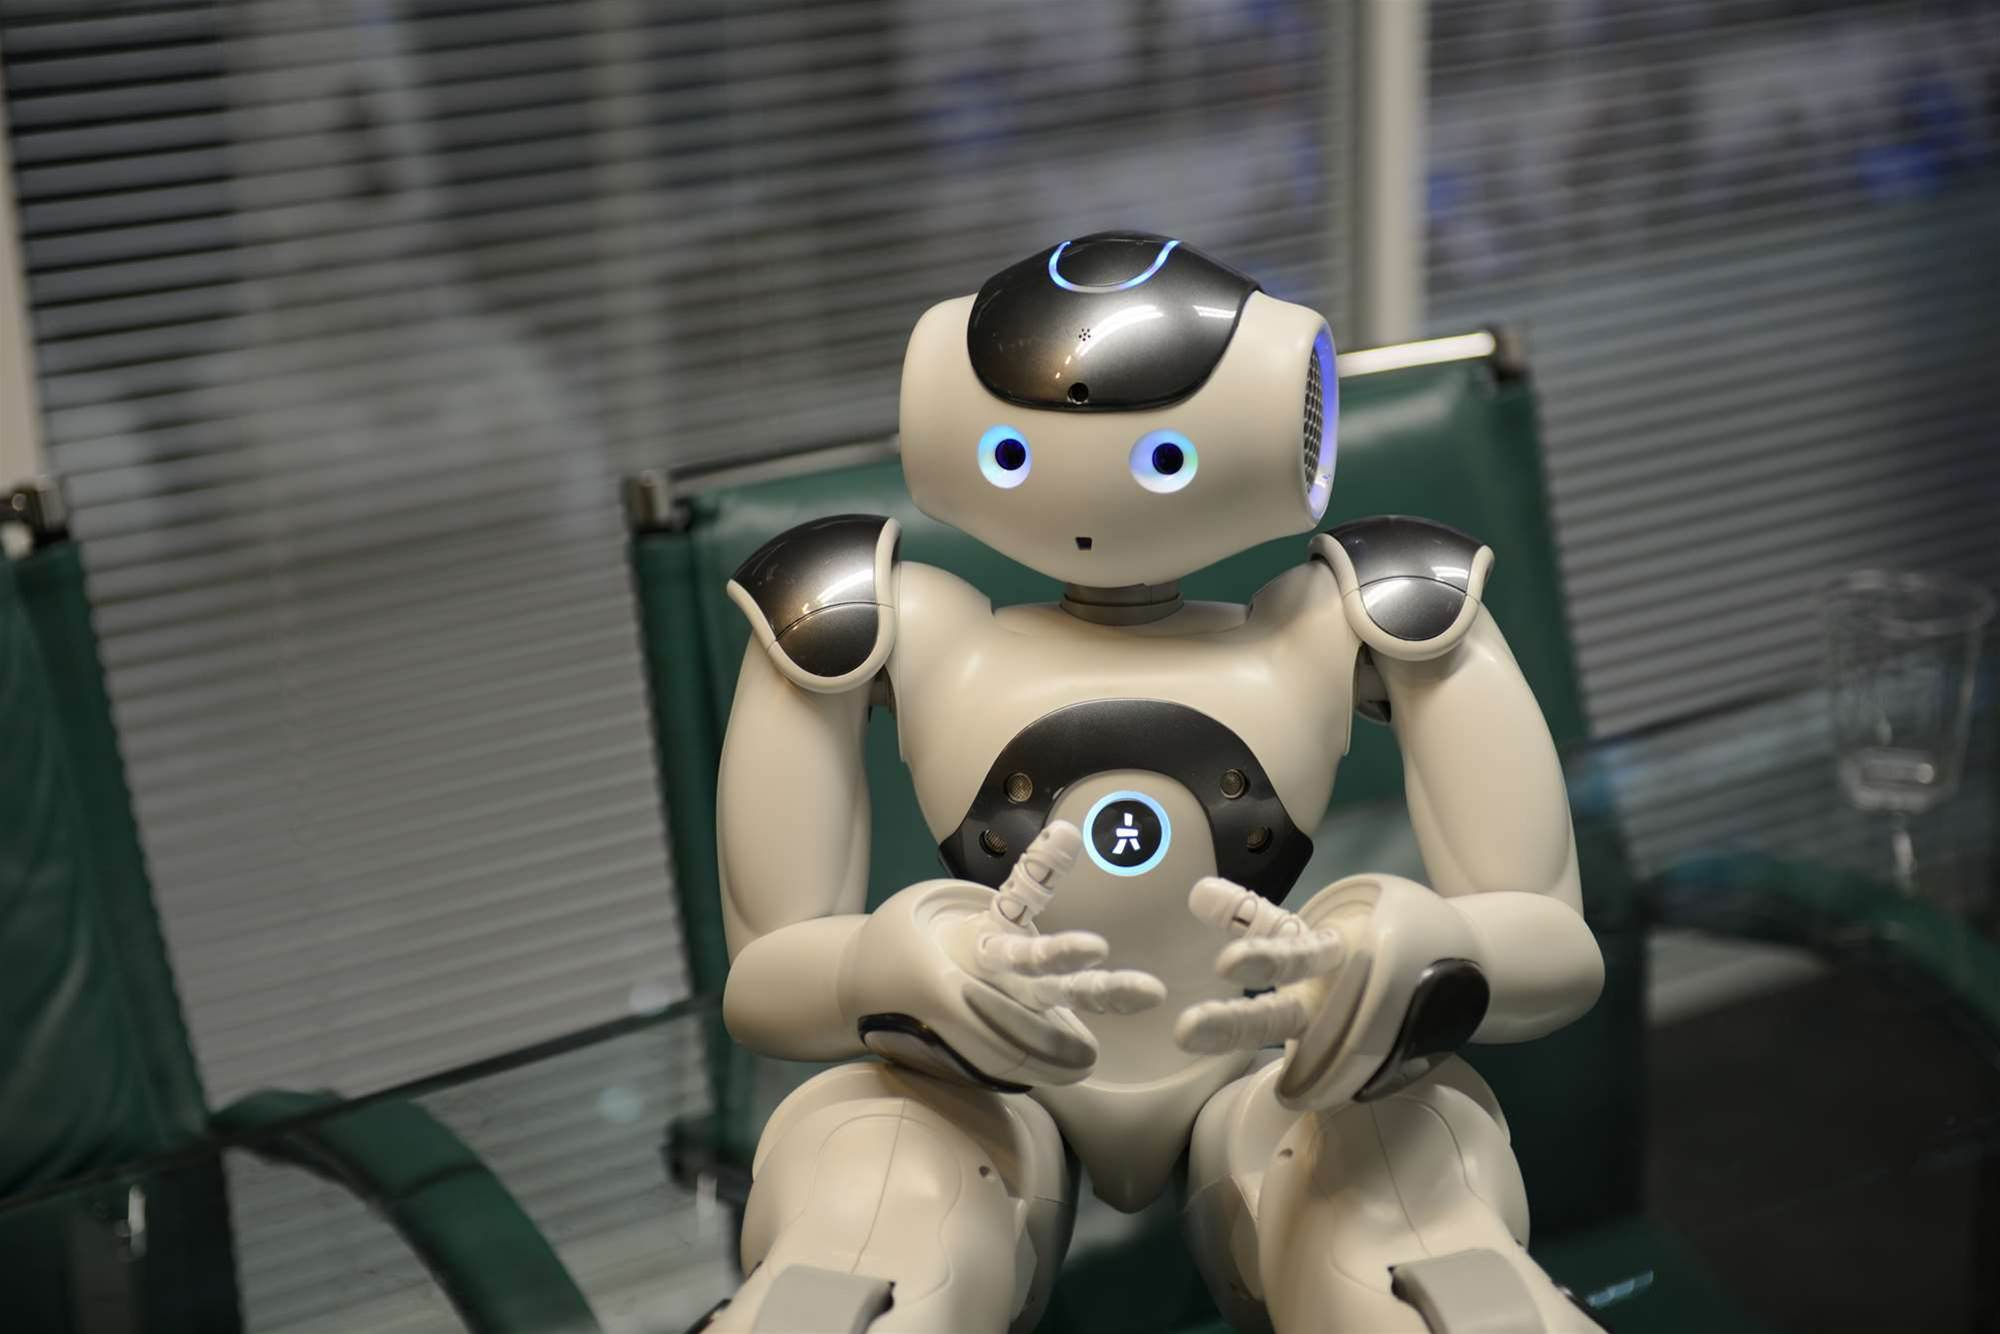 Polite Robots Show Glimmer of Self-Awareness